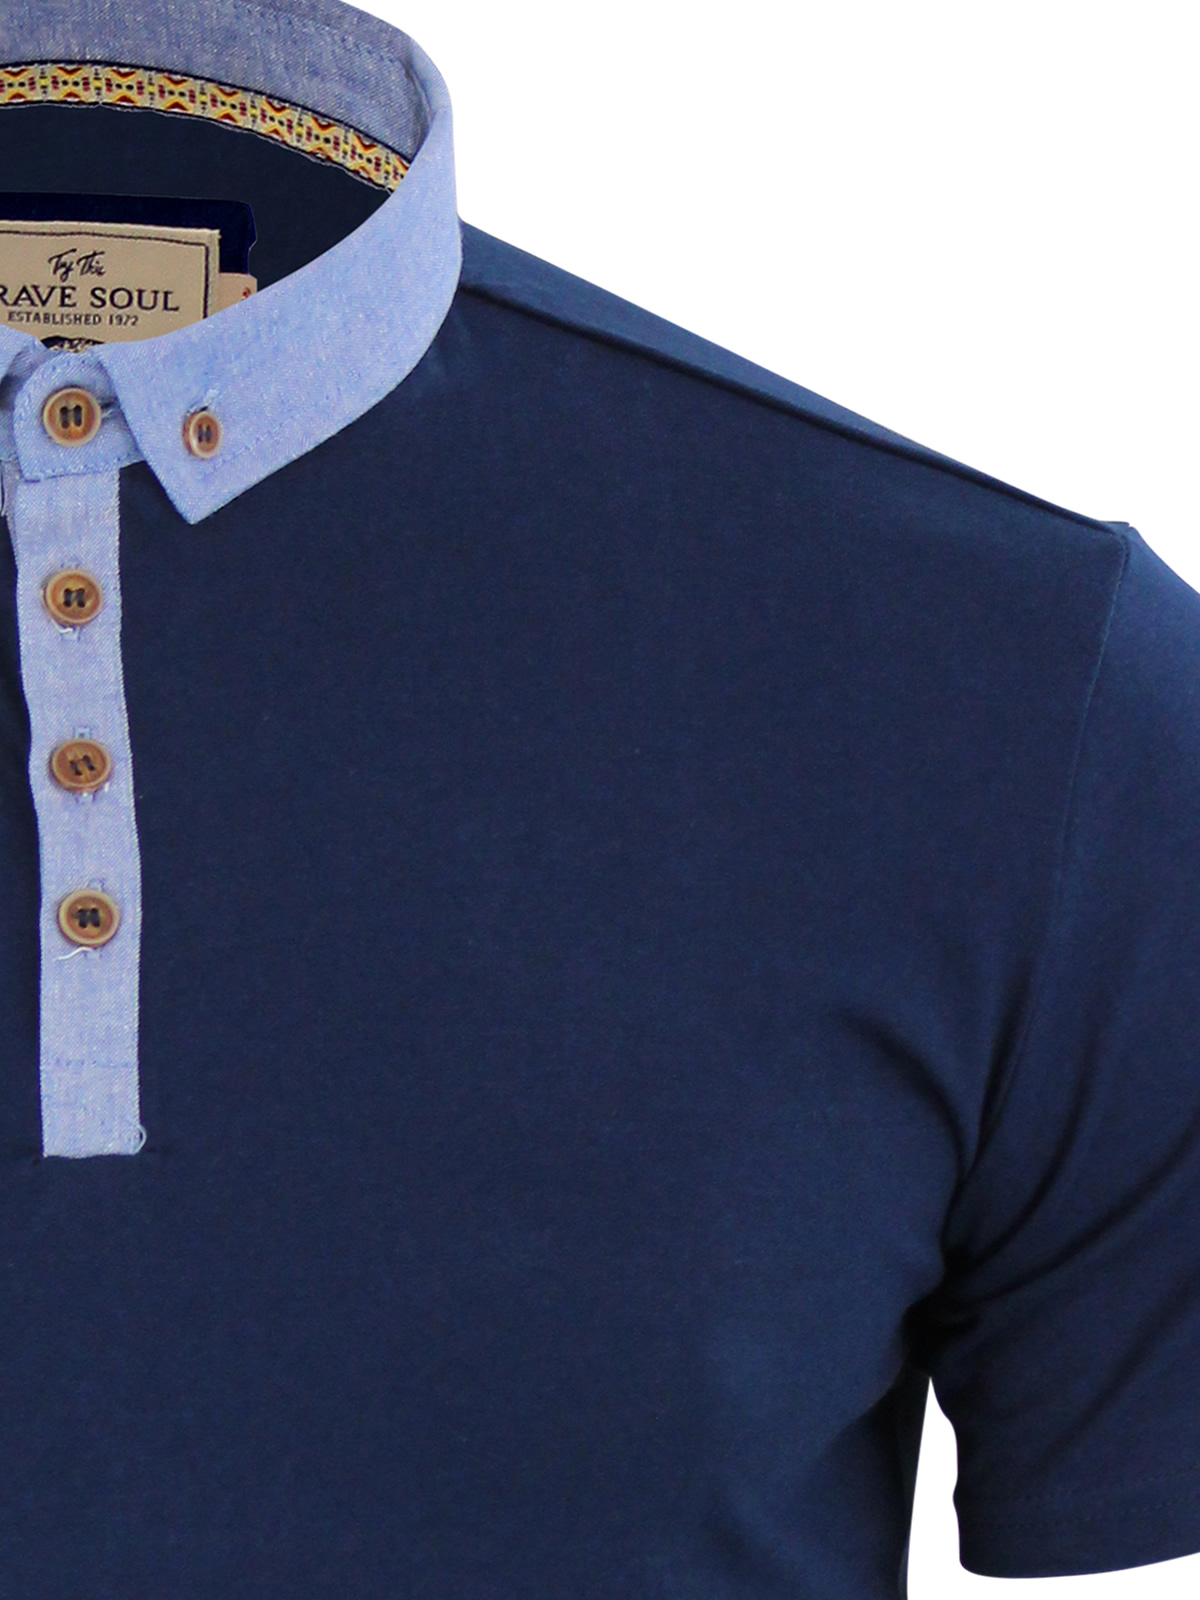 Mens-Polo-T-Shirt-Brave-Soul-Chimera-Chambray-Collared-Cotton-Casual-Top thumbnail 22